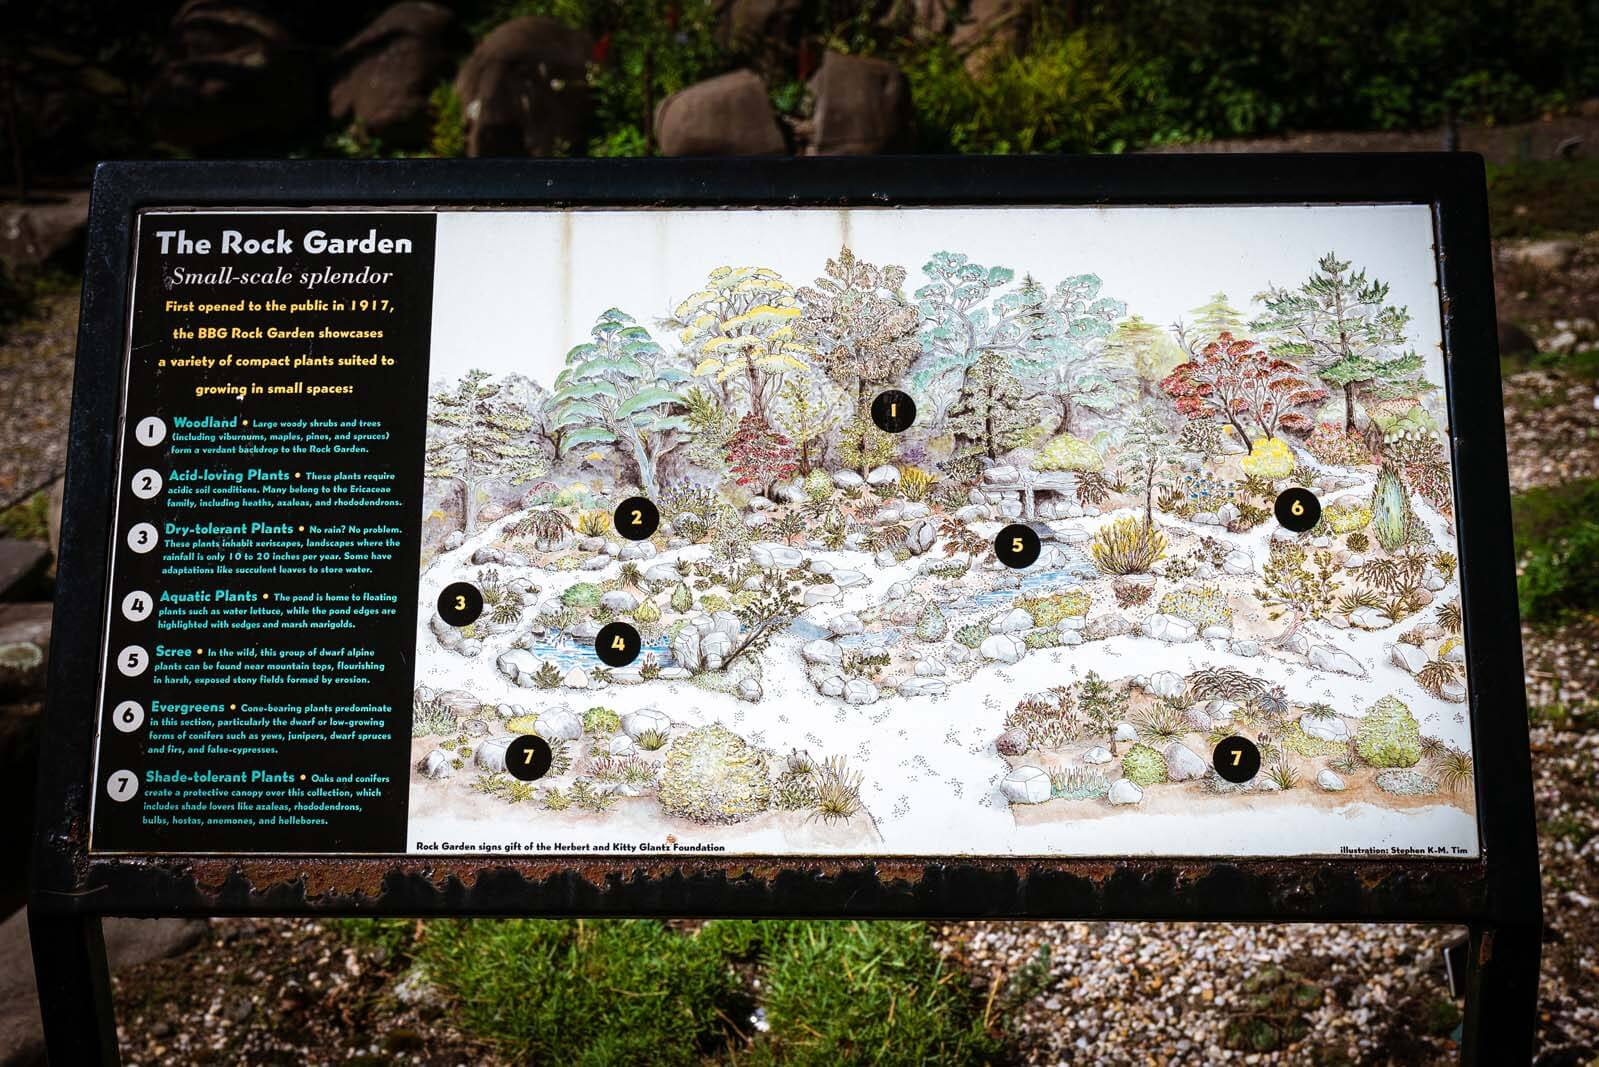 The Rock Garden sign at Brooklyn Botanic Garden